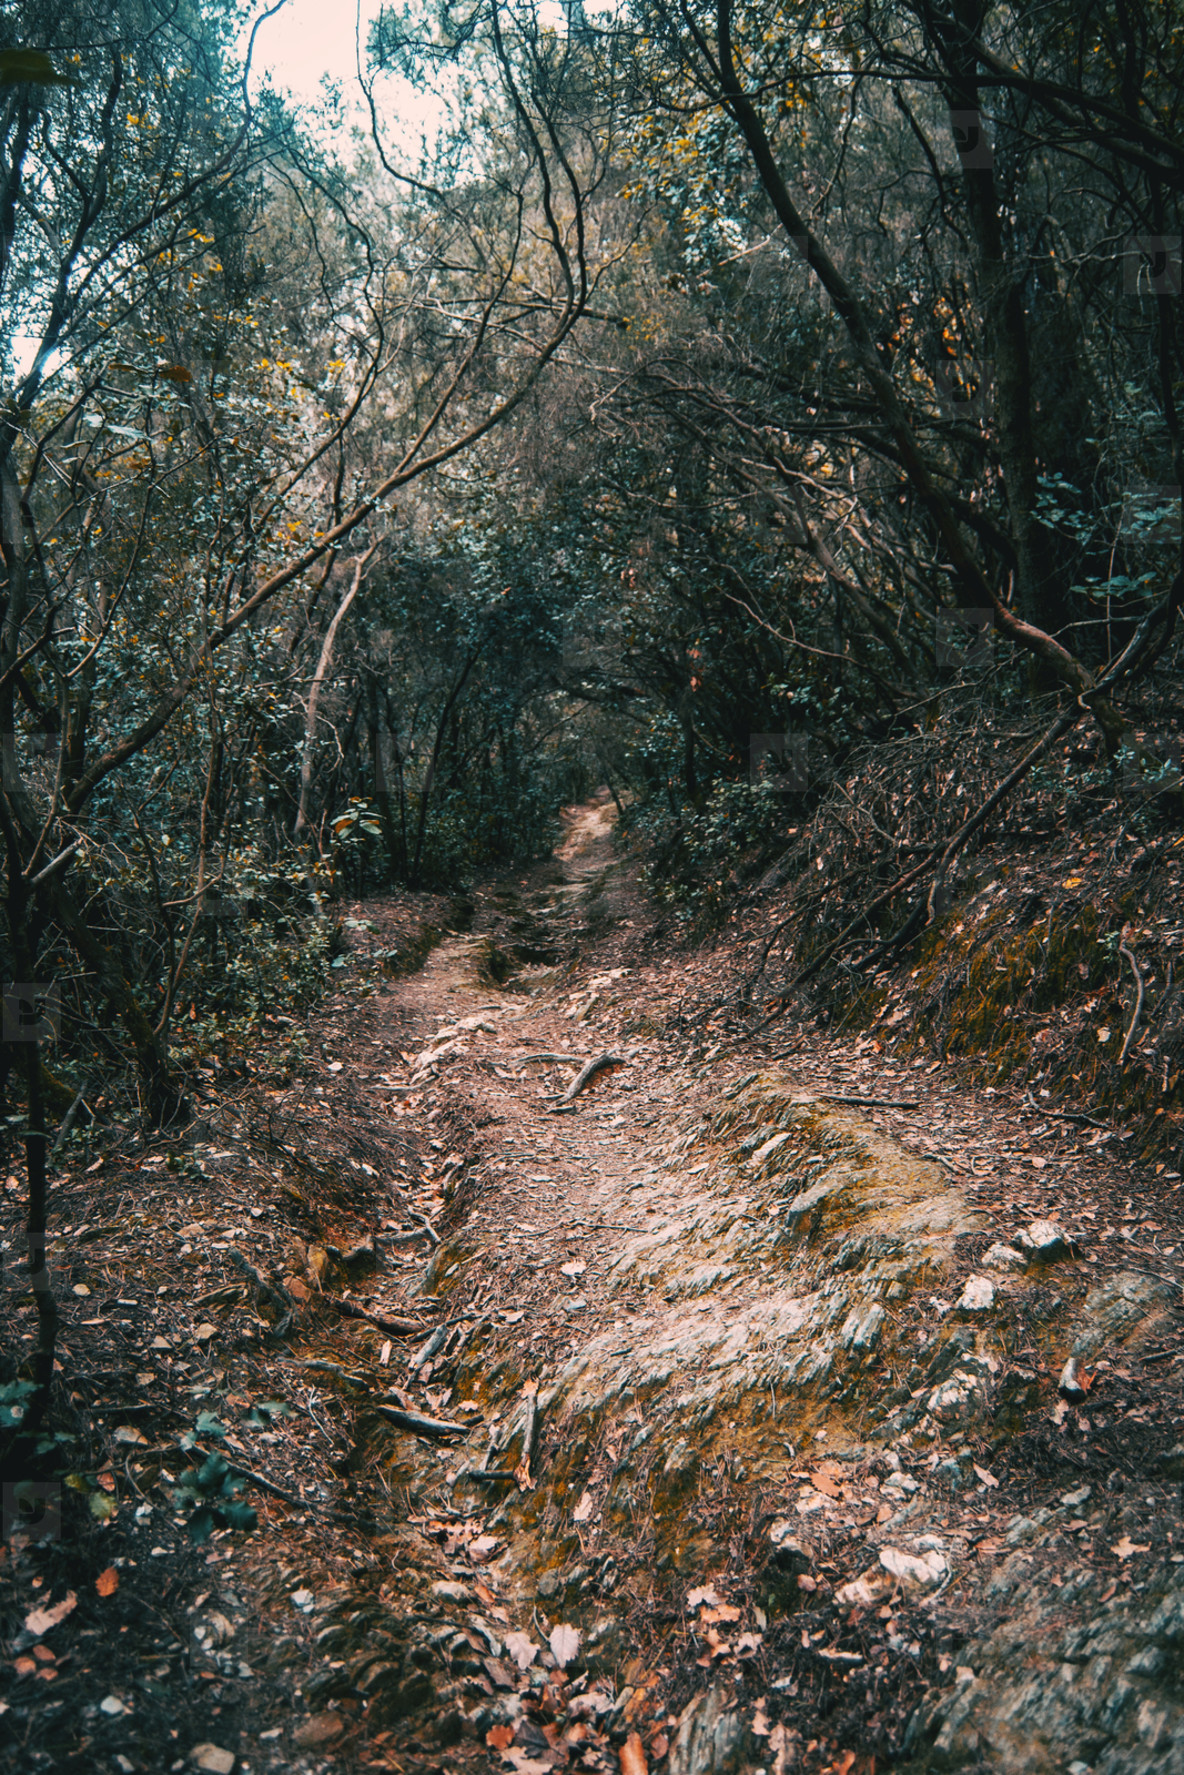 Path in the middle of the forest